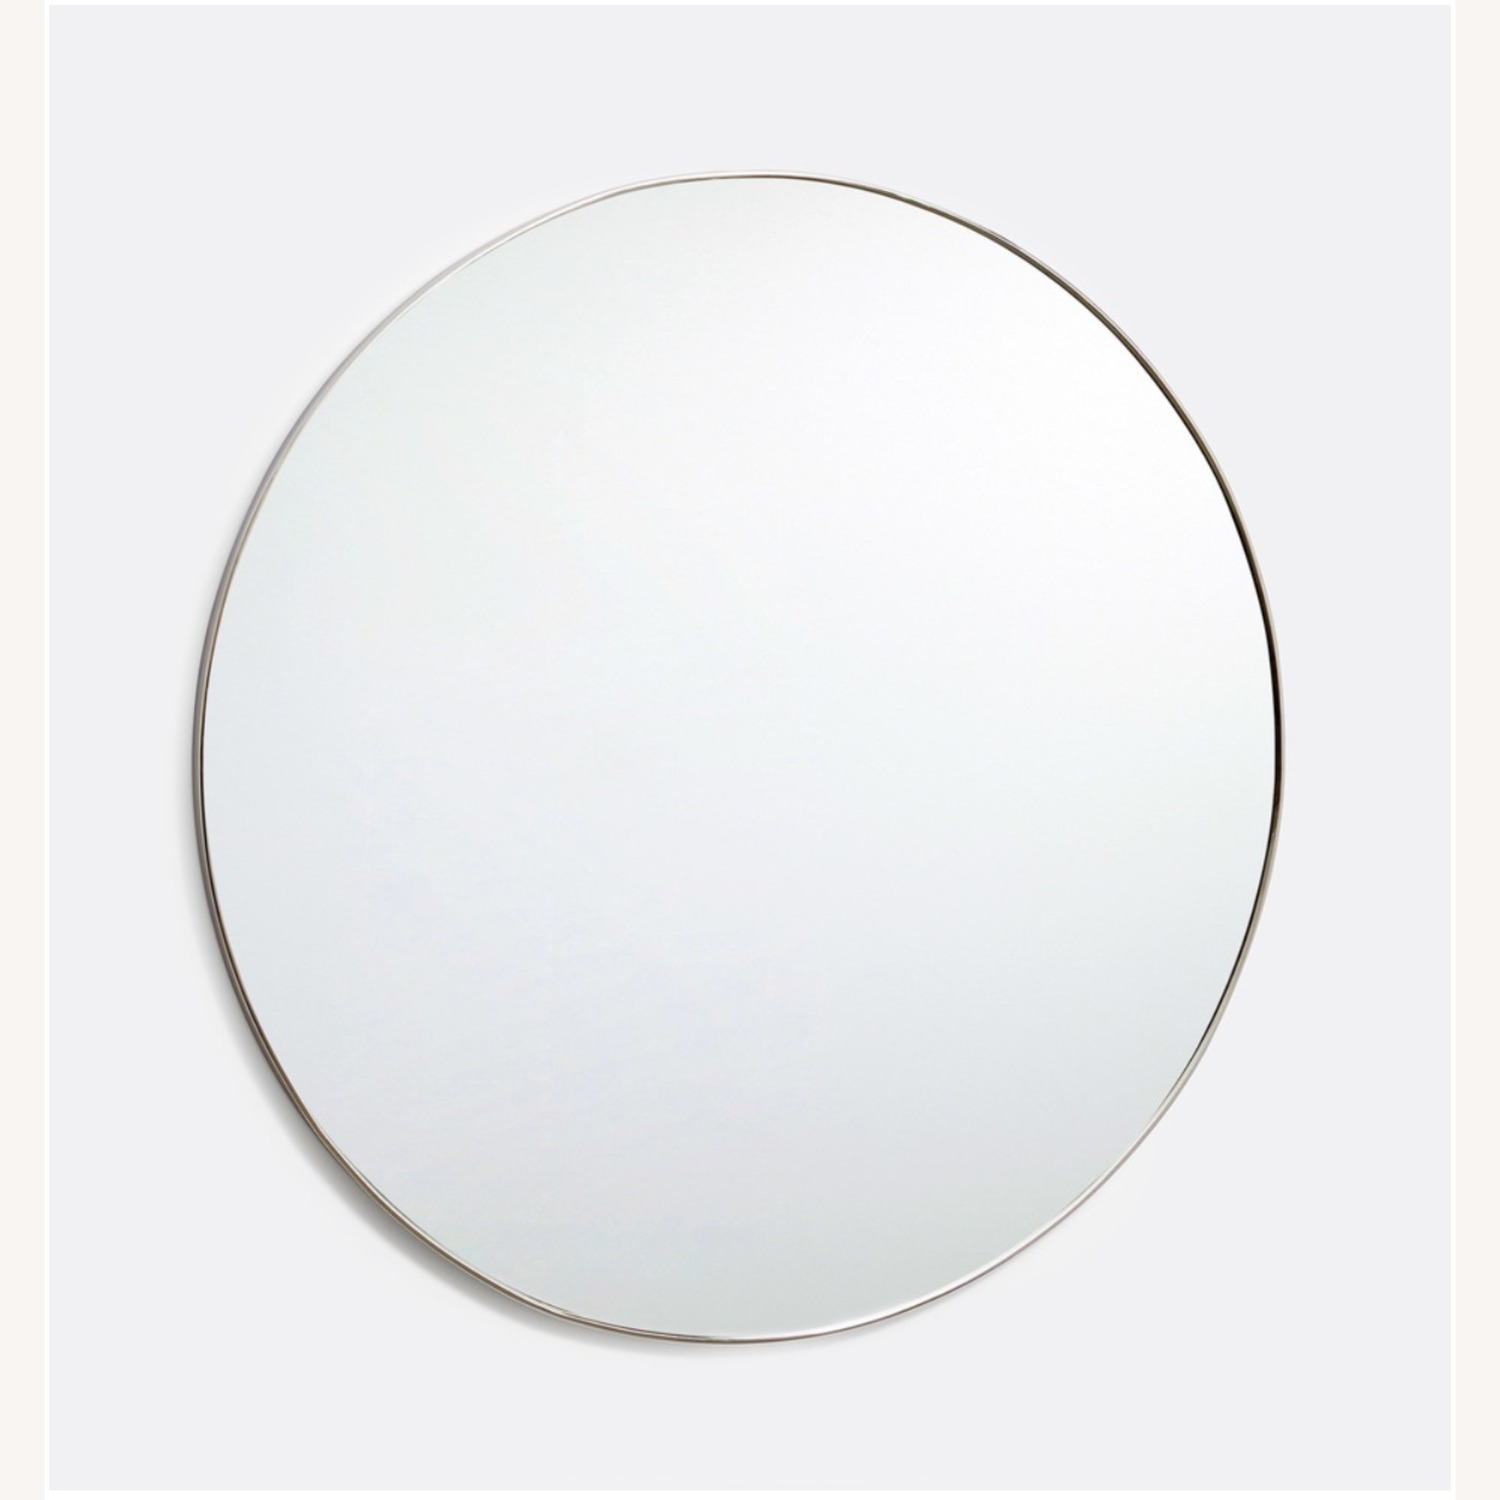 "36"" Round Polished Nickel Framed Mirror - image-1"